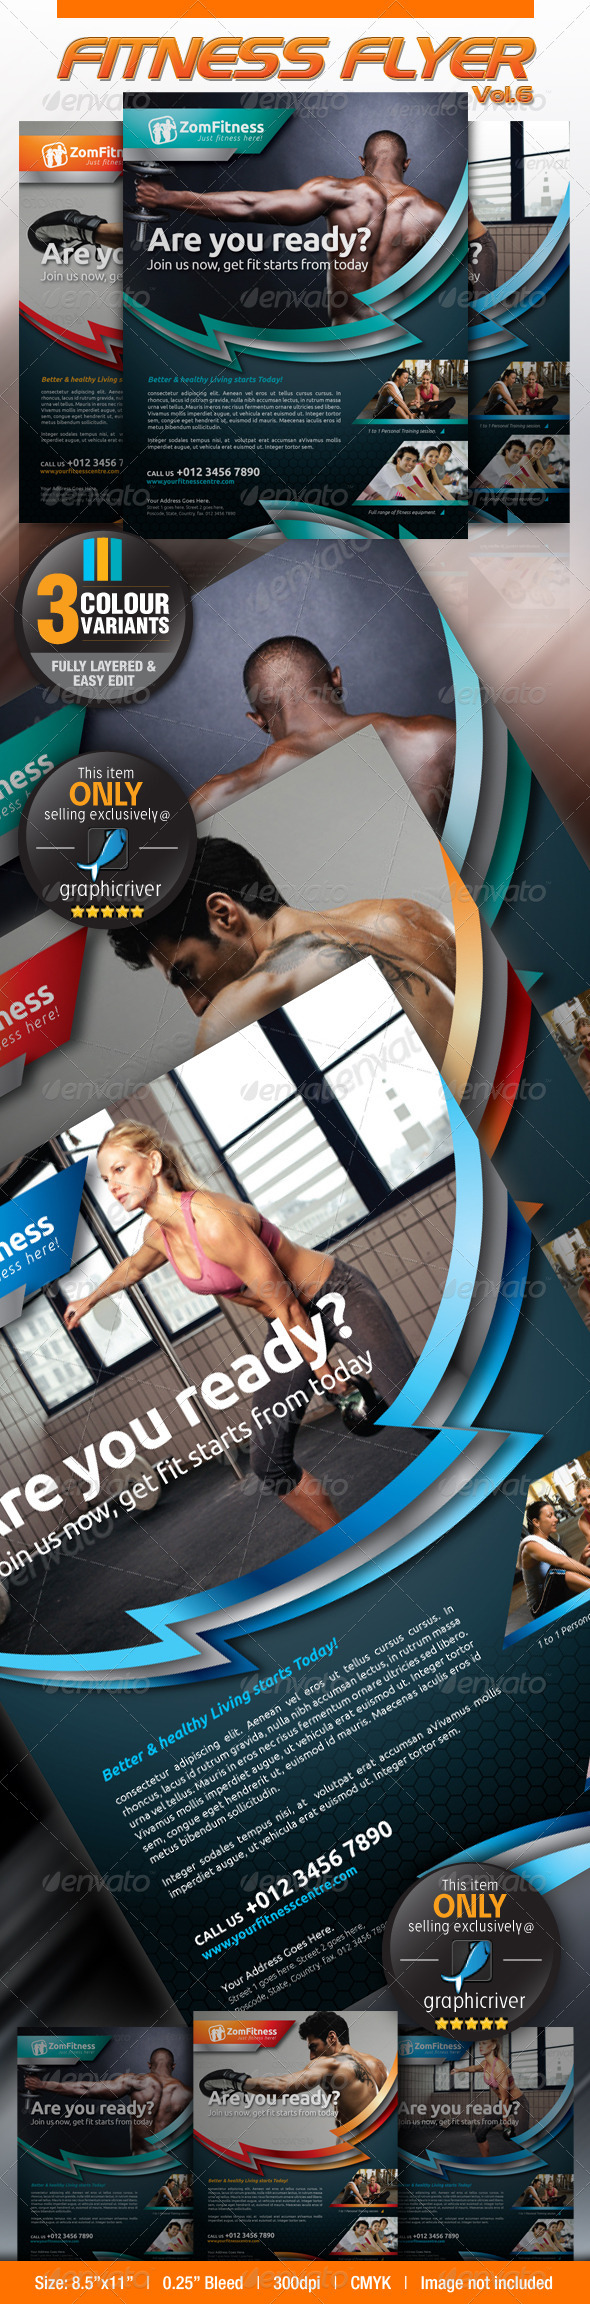 Fitness Flyer Vol.6 - Sports Events